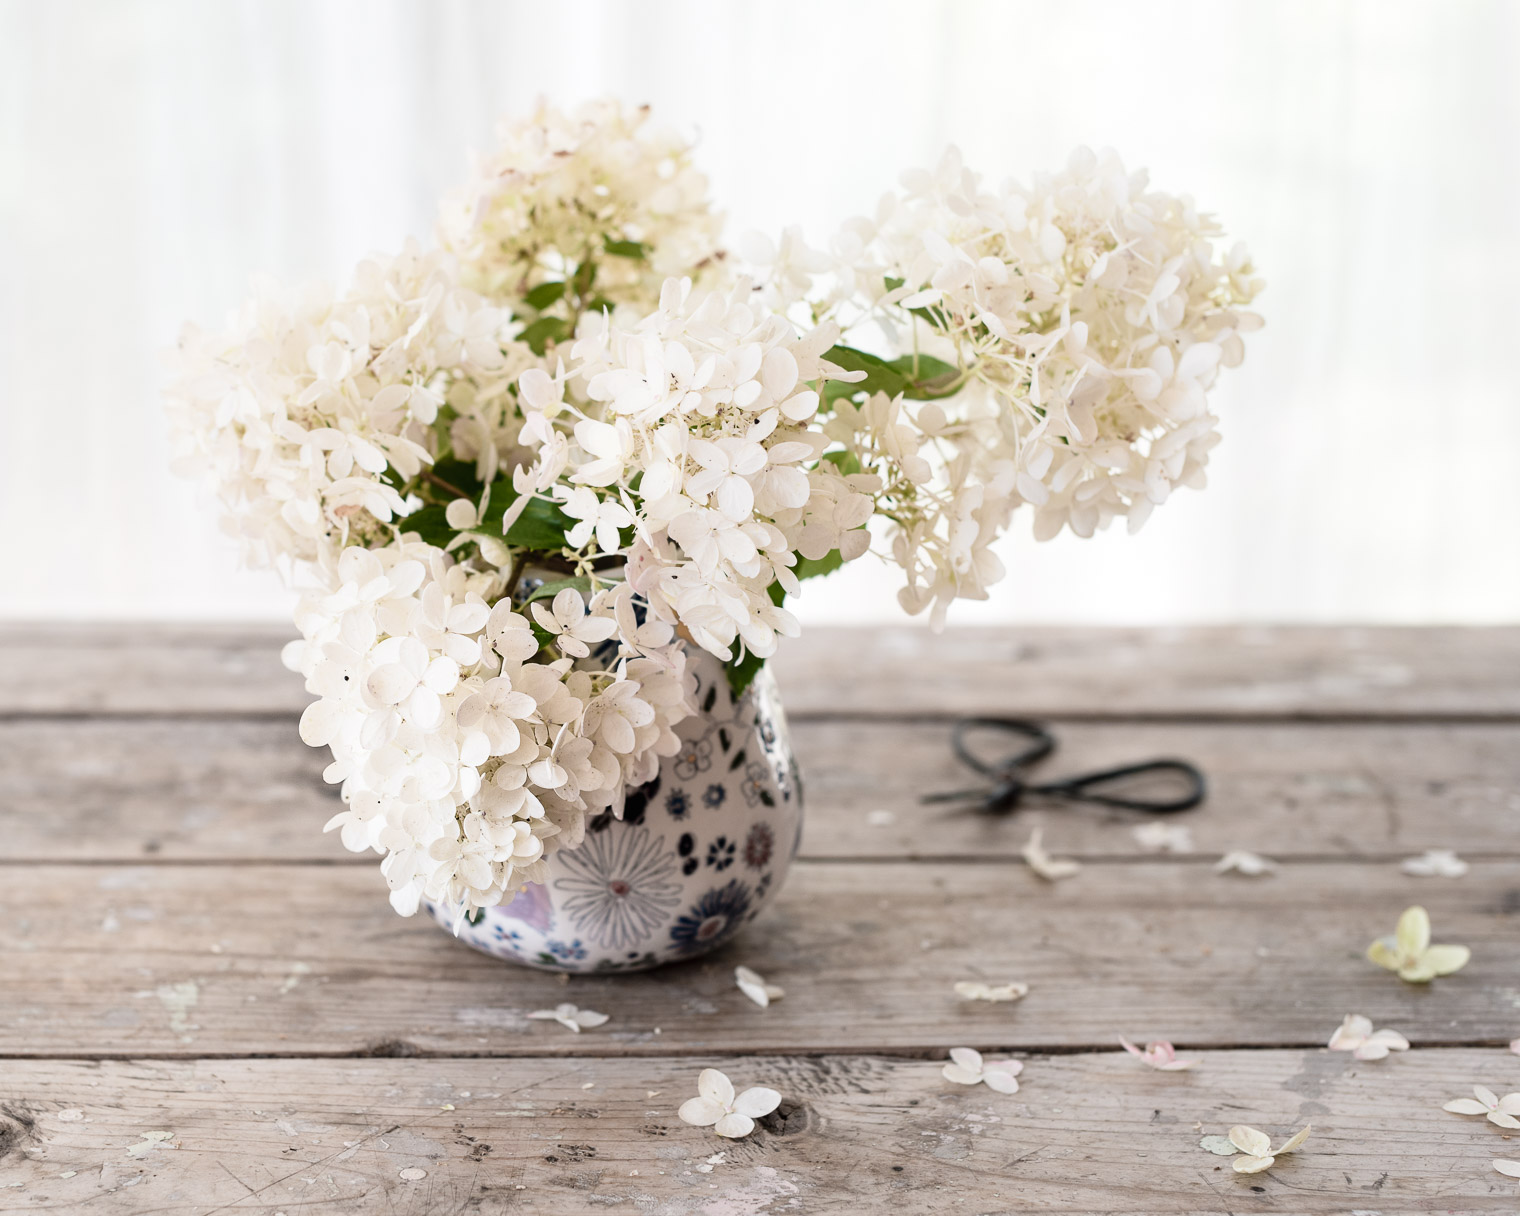 Hydrangea Bouquet, Late Summer Arrangements Idea #3, Hydrangea Heaven, Keeping With the Times